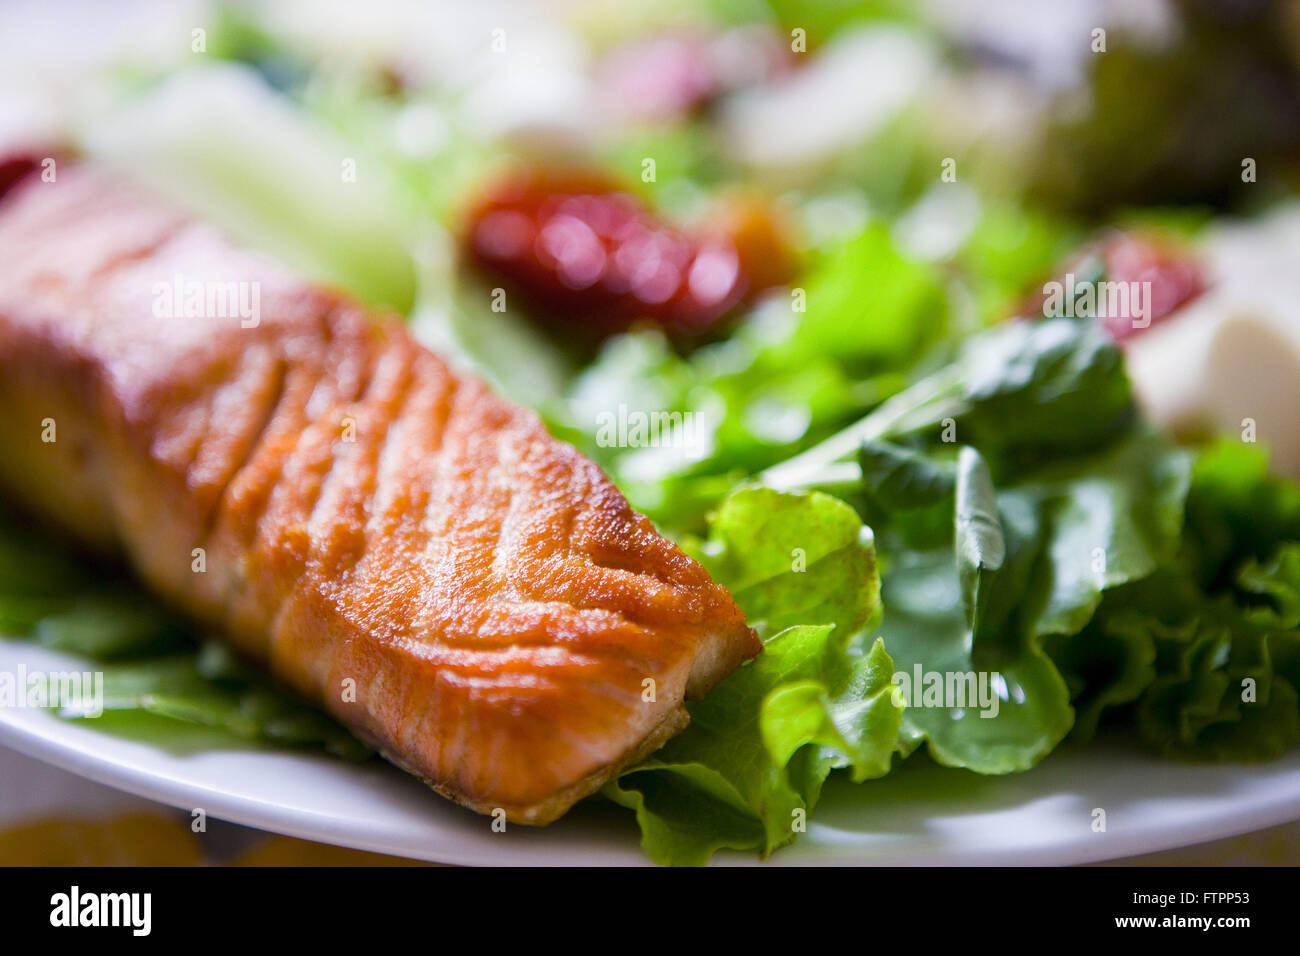 File grilled salmon and salad - Stock Image